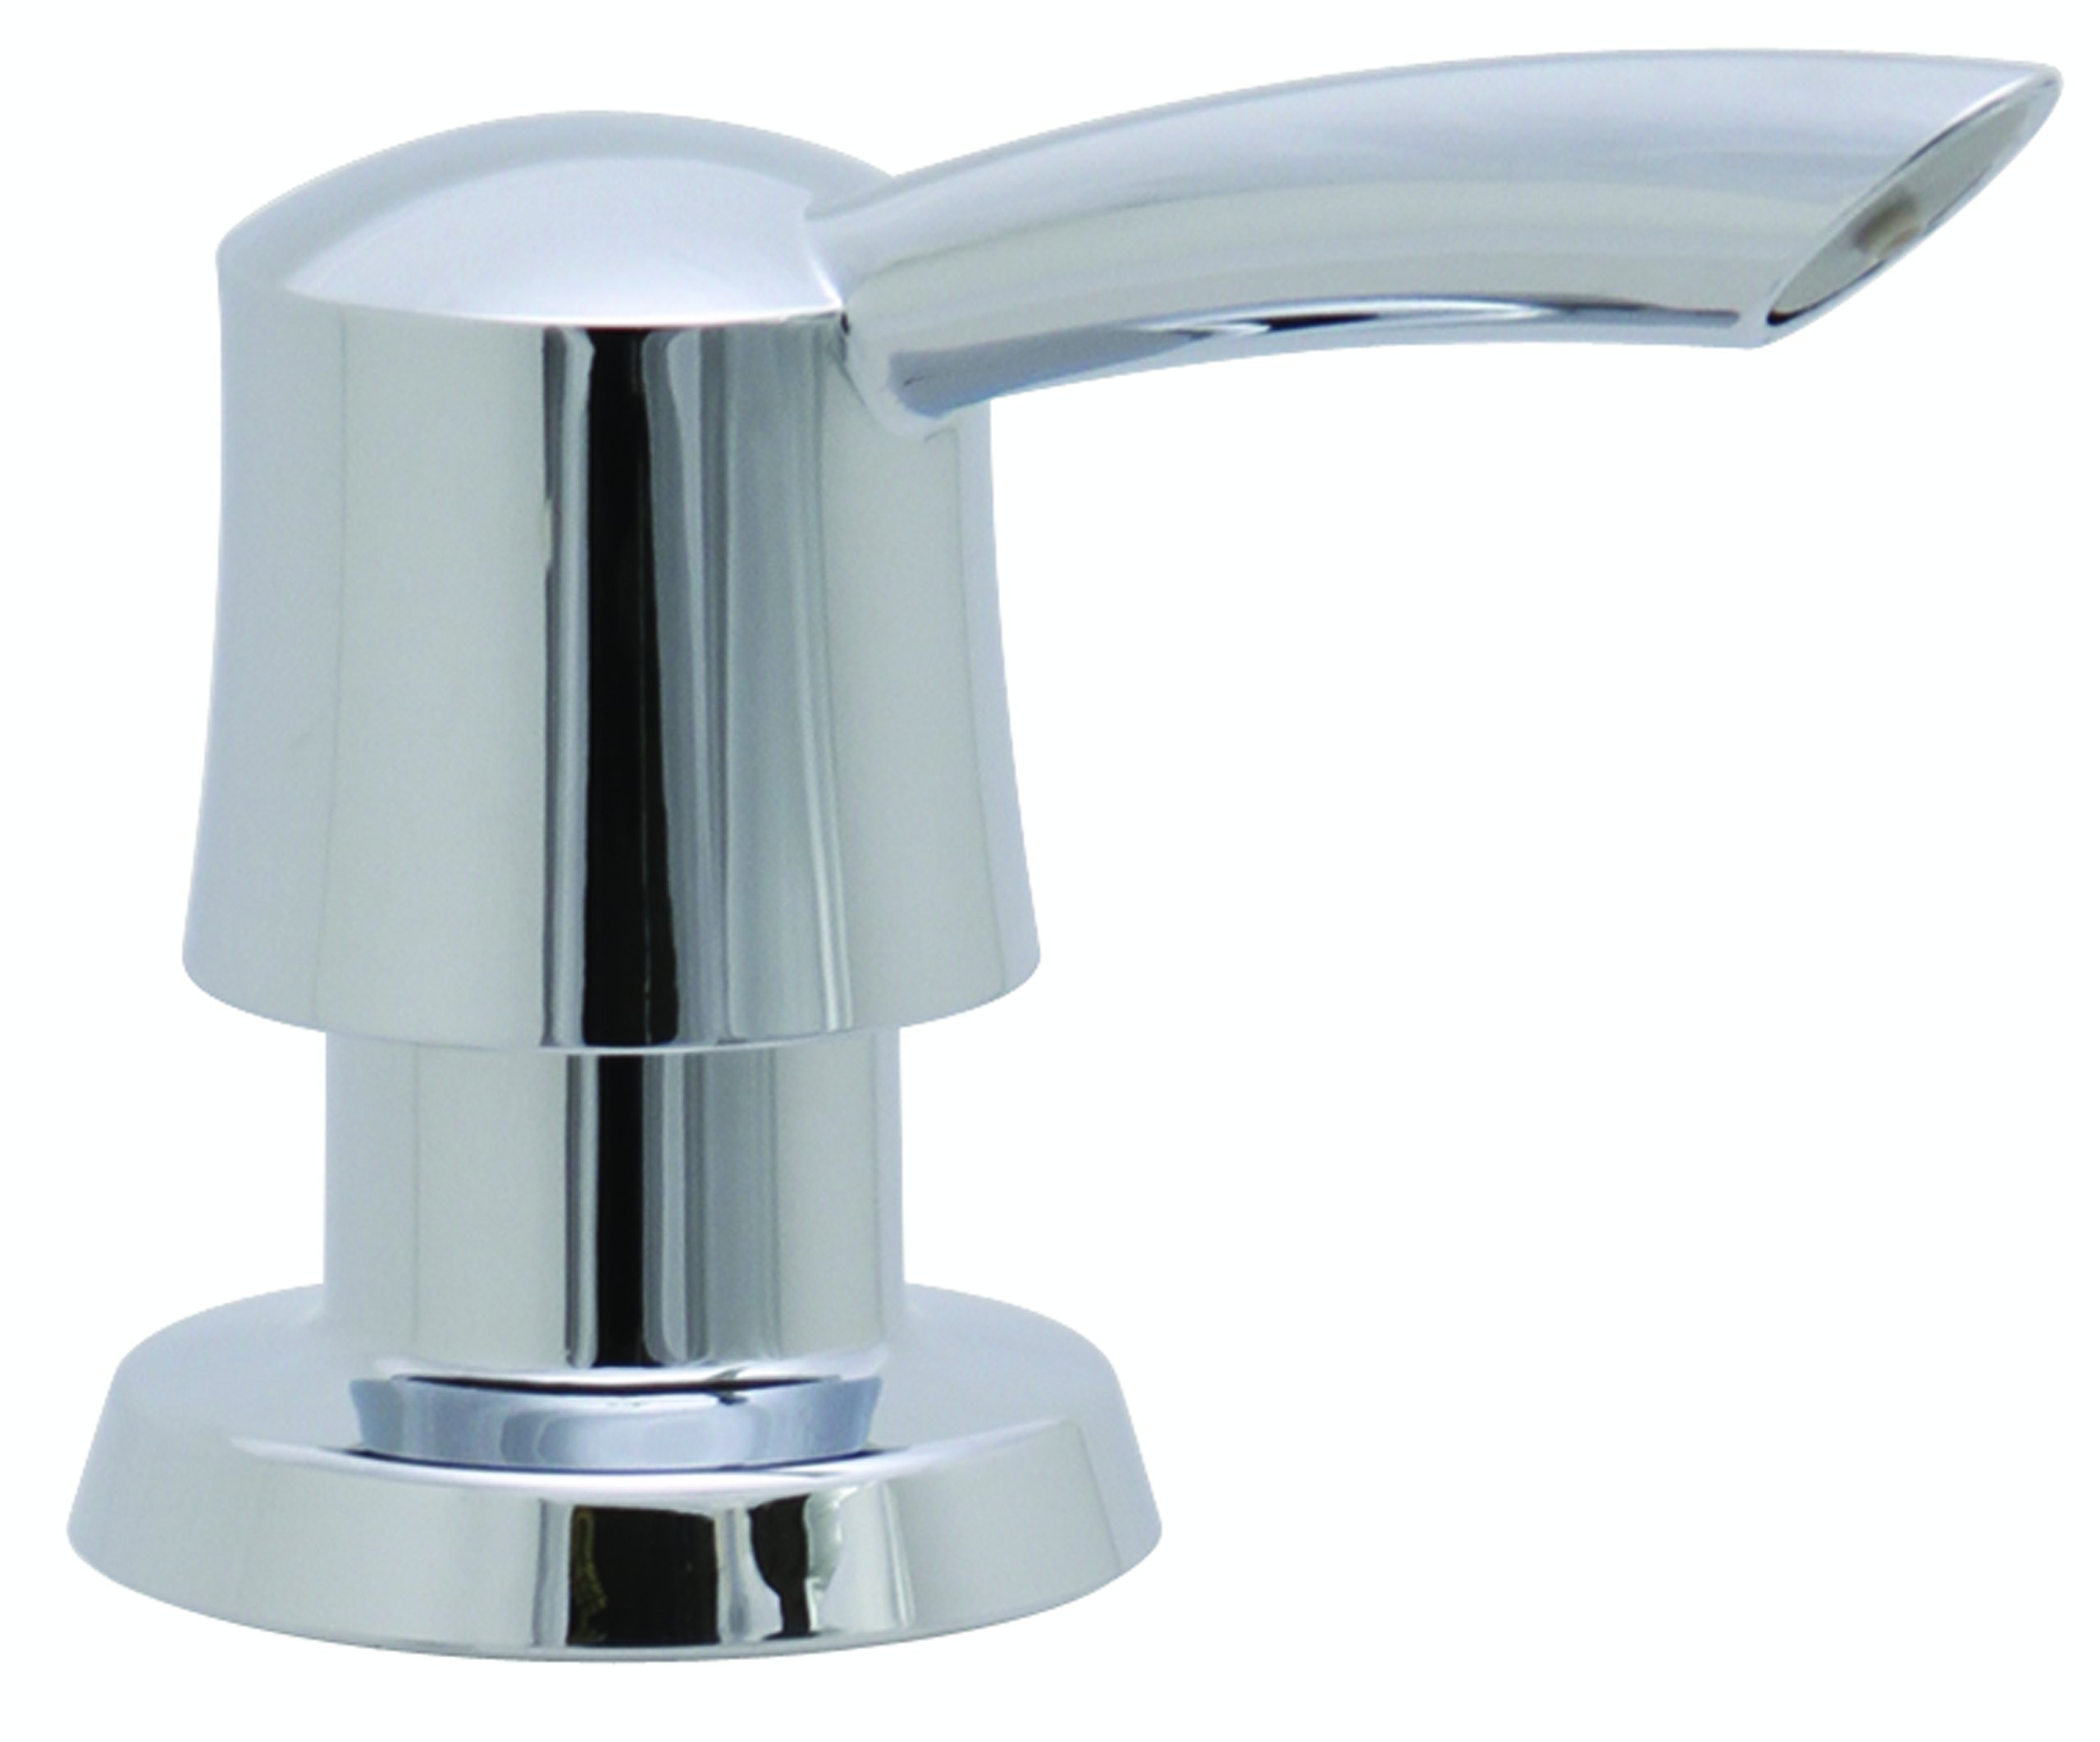 Premier Faucet 284456 Soap Dispenser, 17.5 Ounce, Chrome